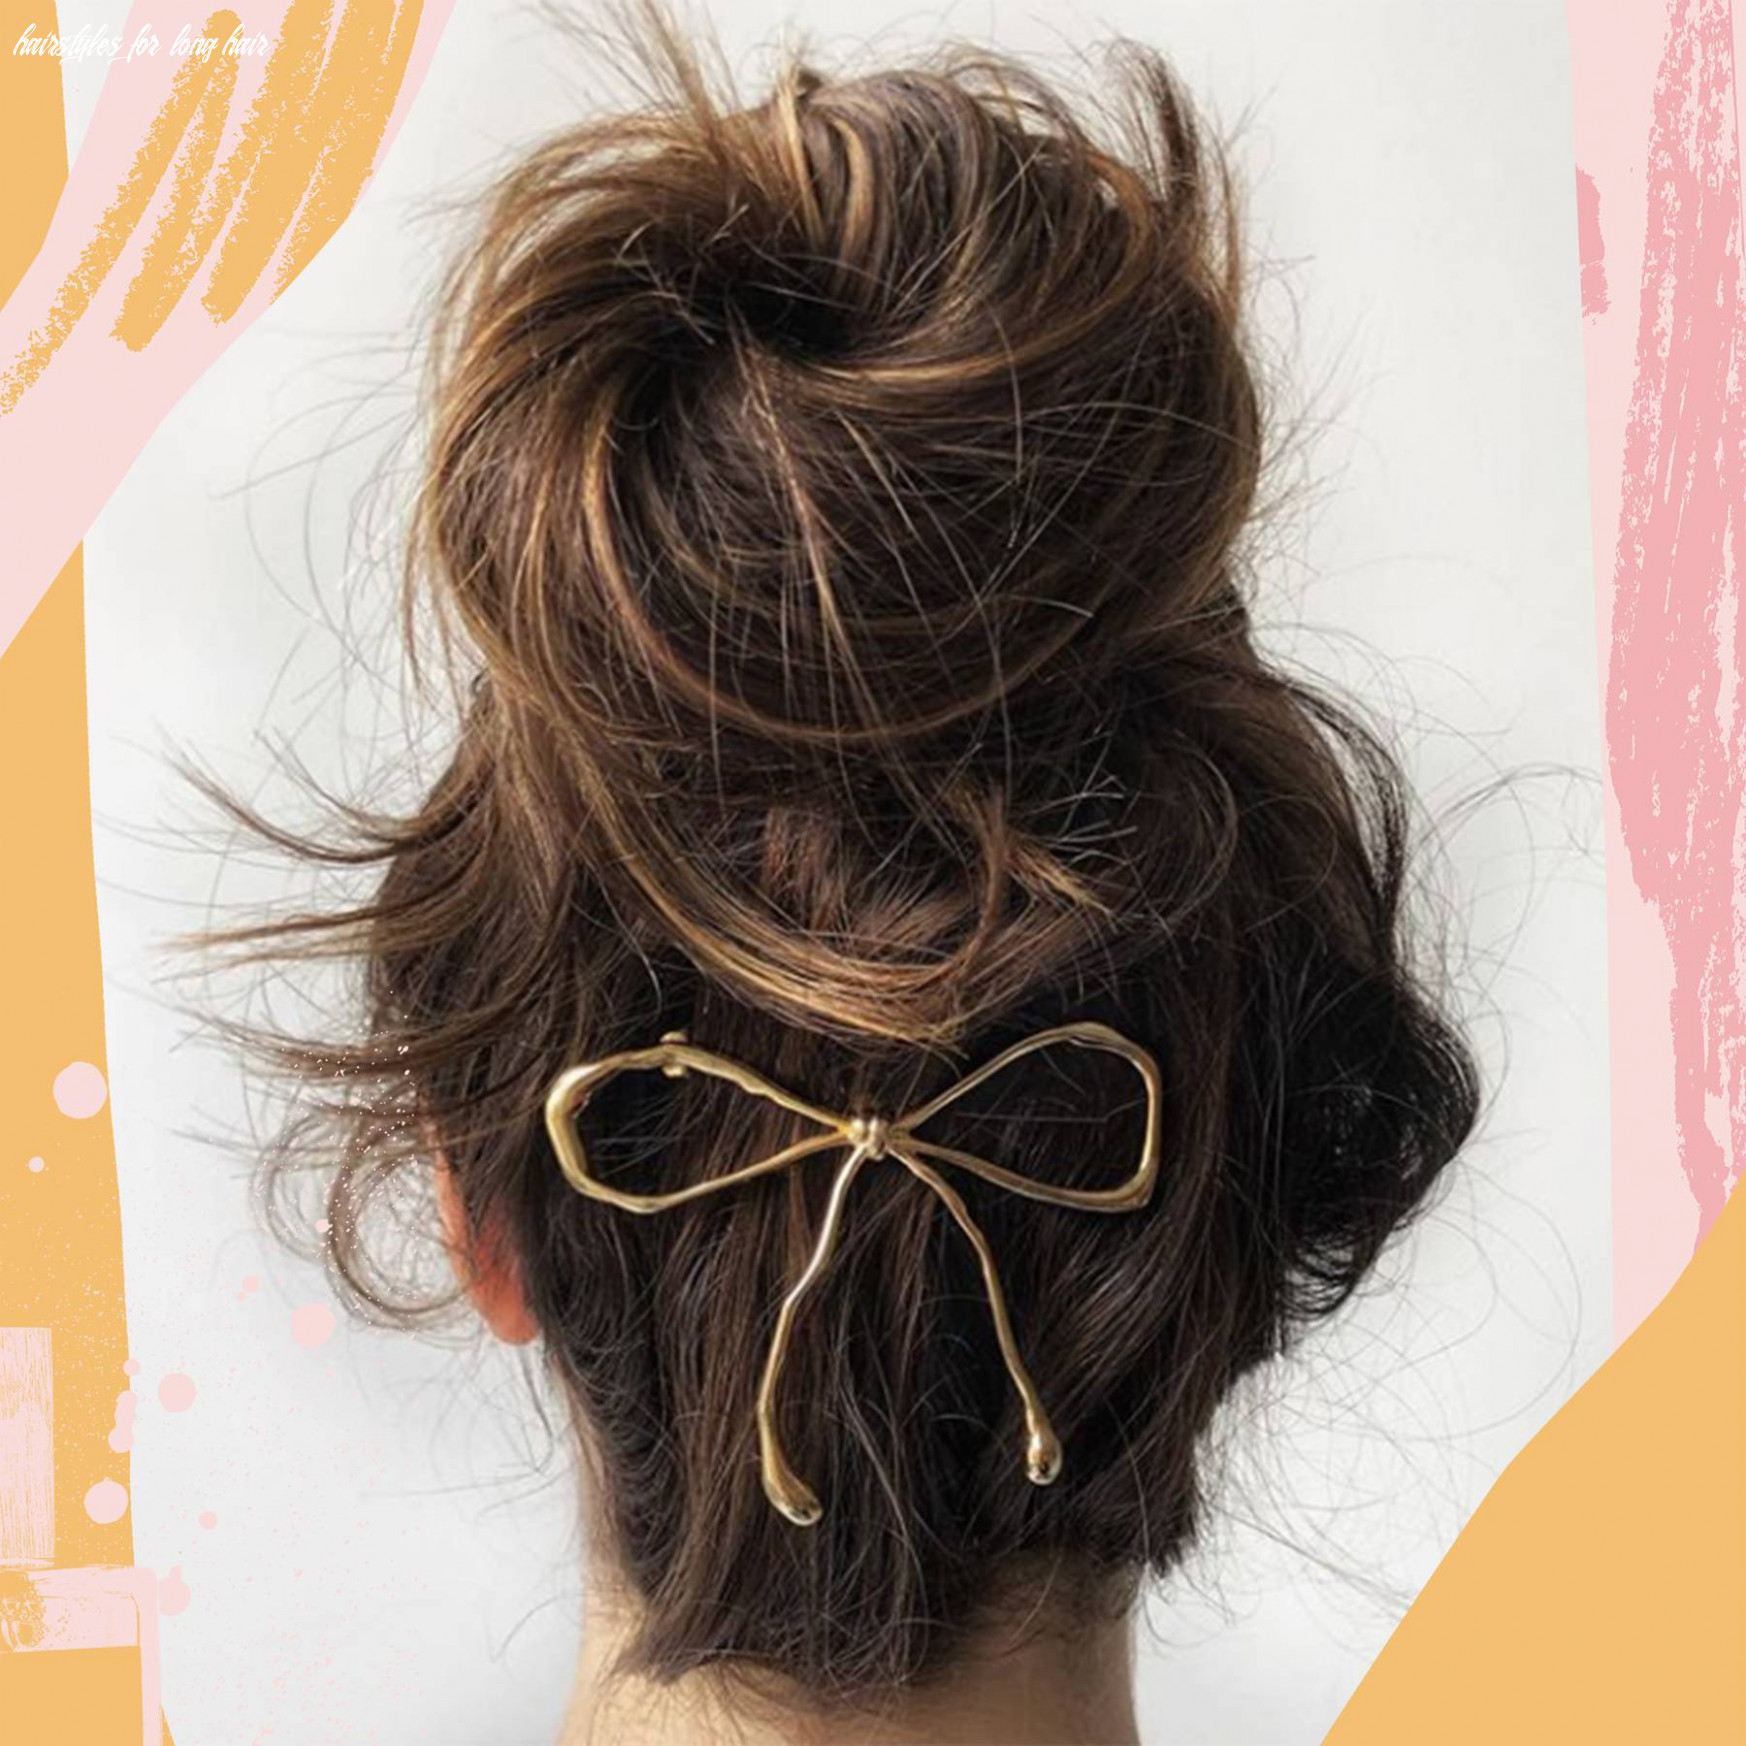 Hairstyles For Long Hair: Long Hair Trends, Ideas & Tips 9 ..